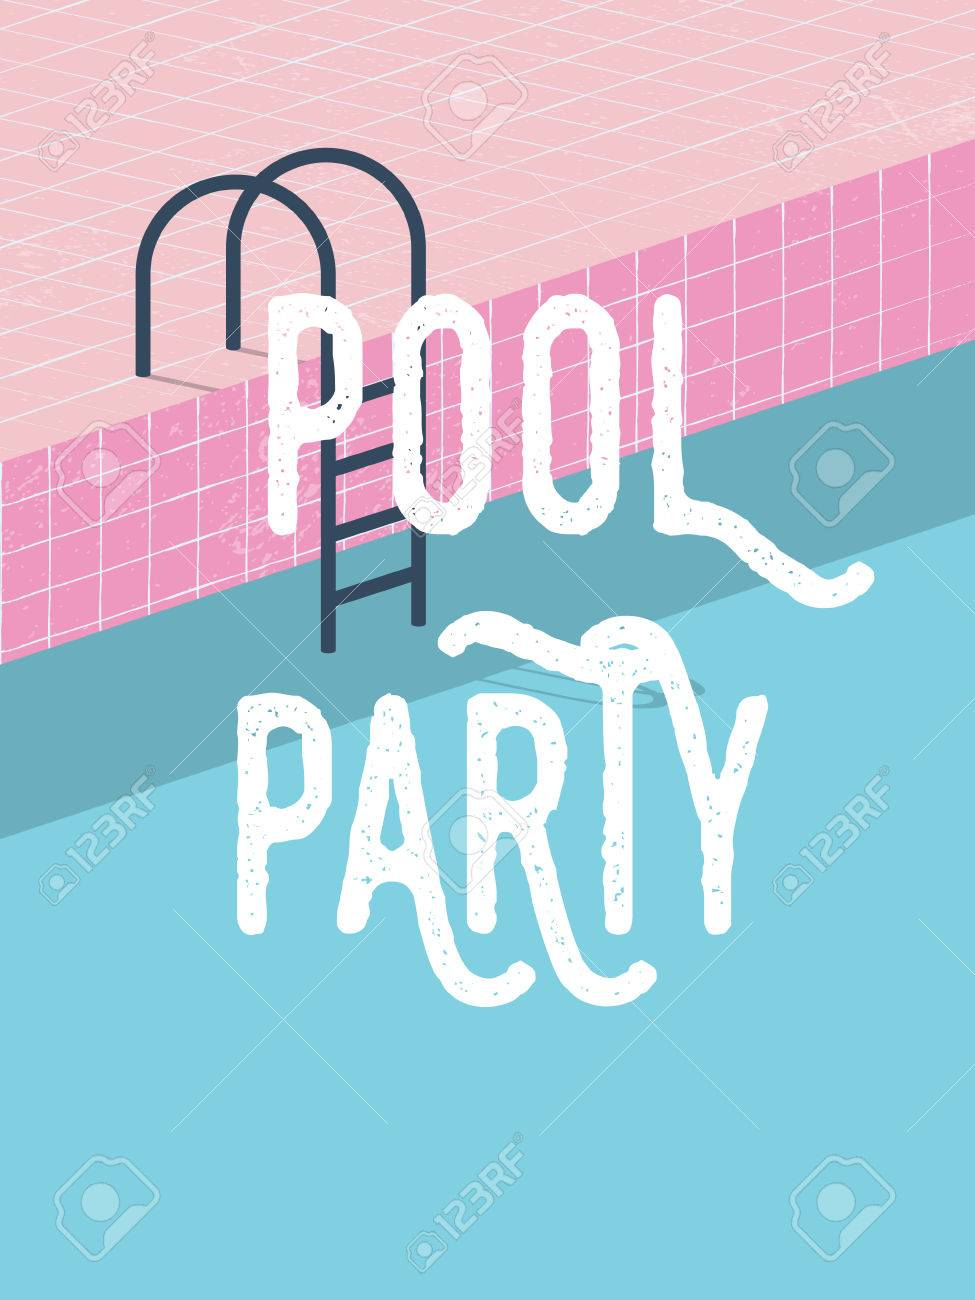 Pool Party Invitations Templates Free Image collections - Party ...